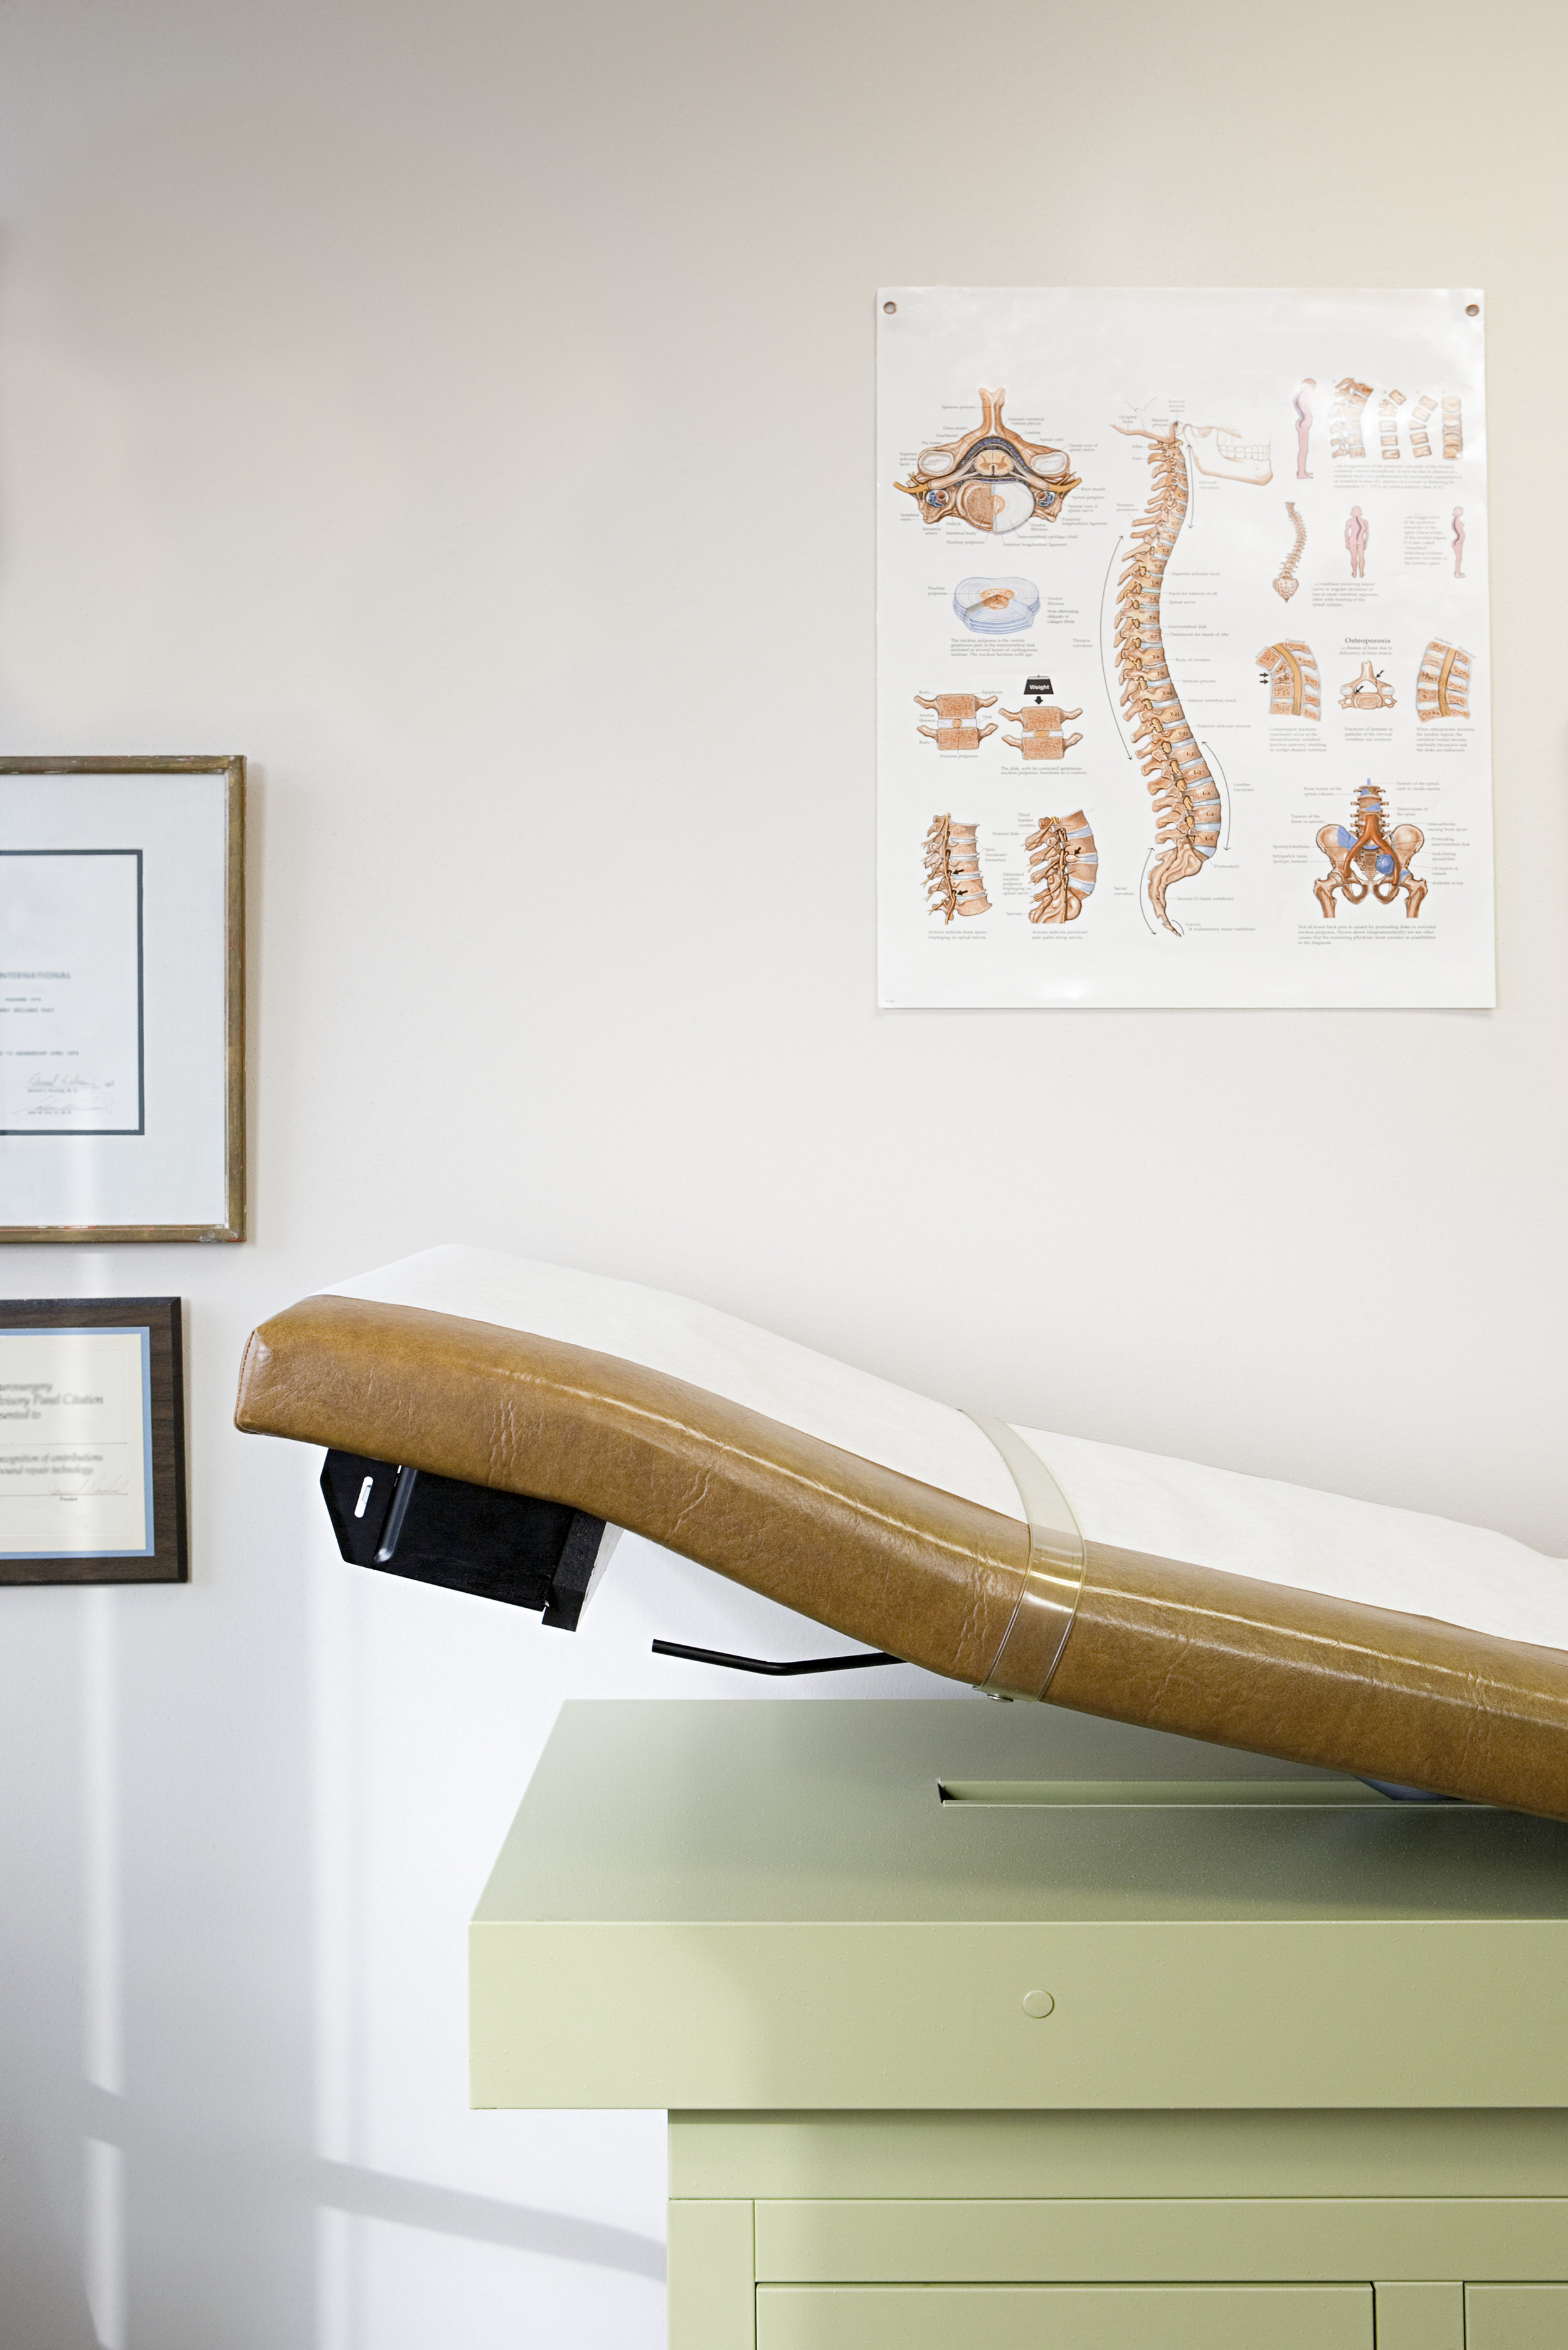 New patients are usually surprised at how comfortable and easy the first appointment is.